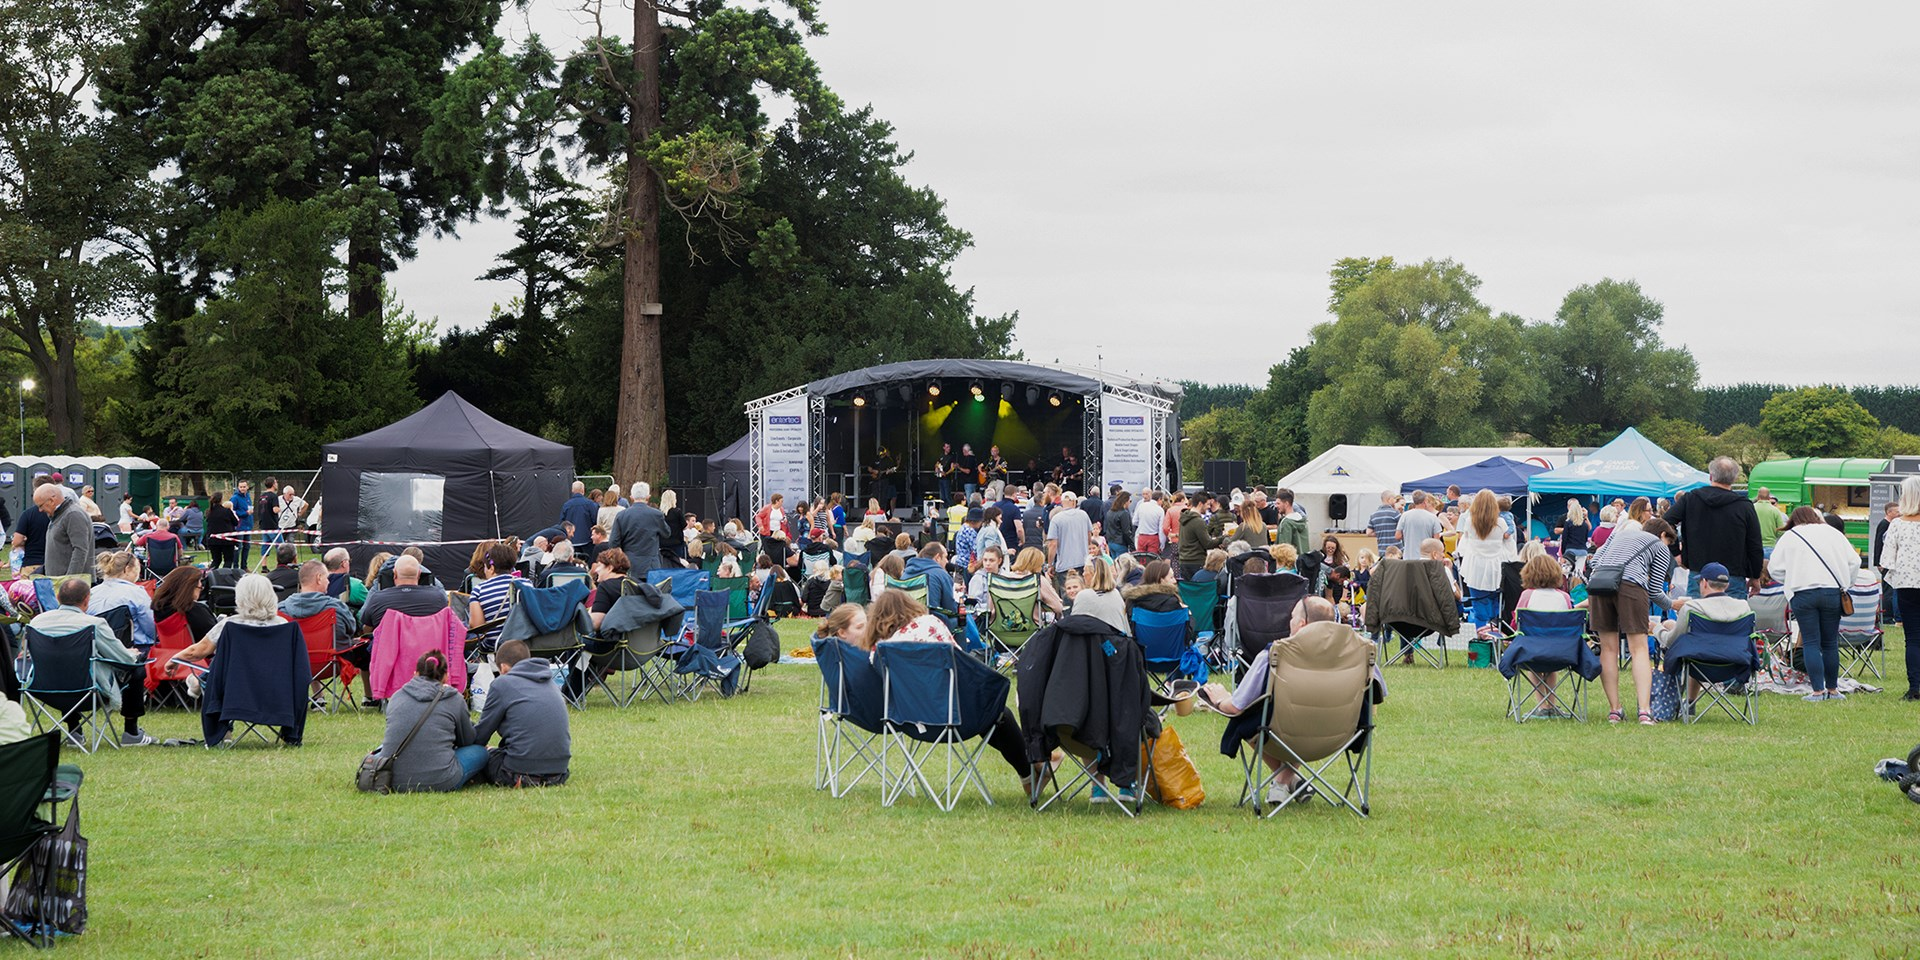 Aston Clinton Parish Council Booking An Event in the Park